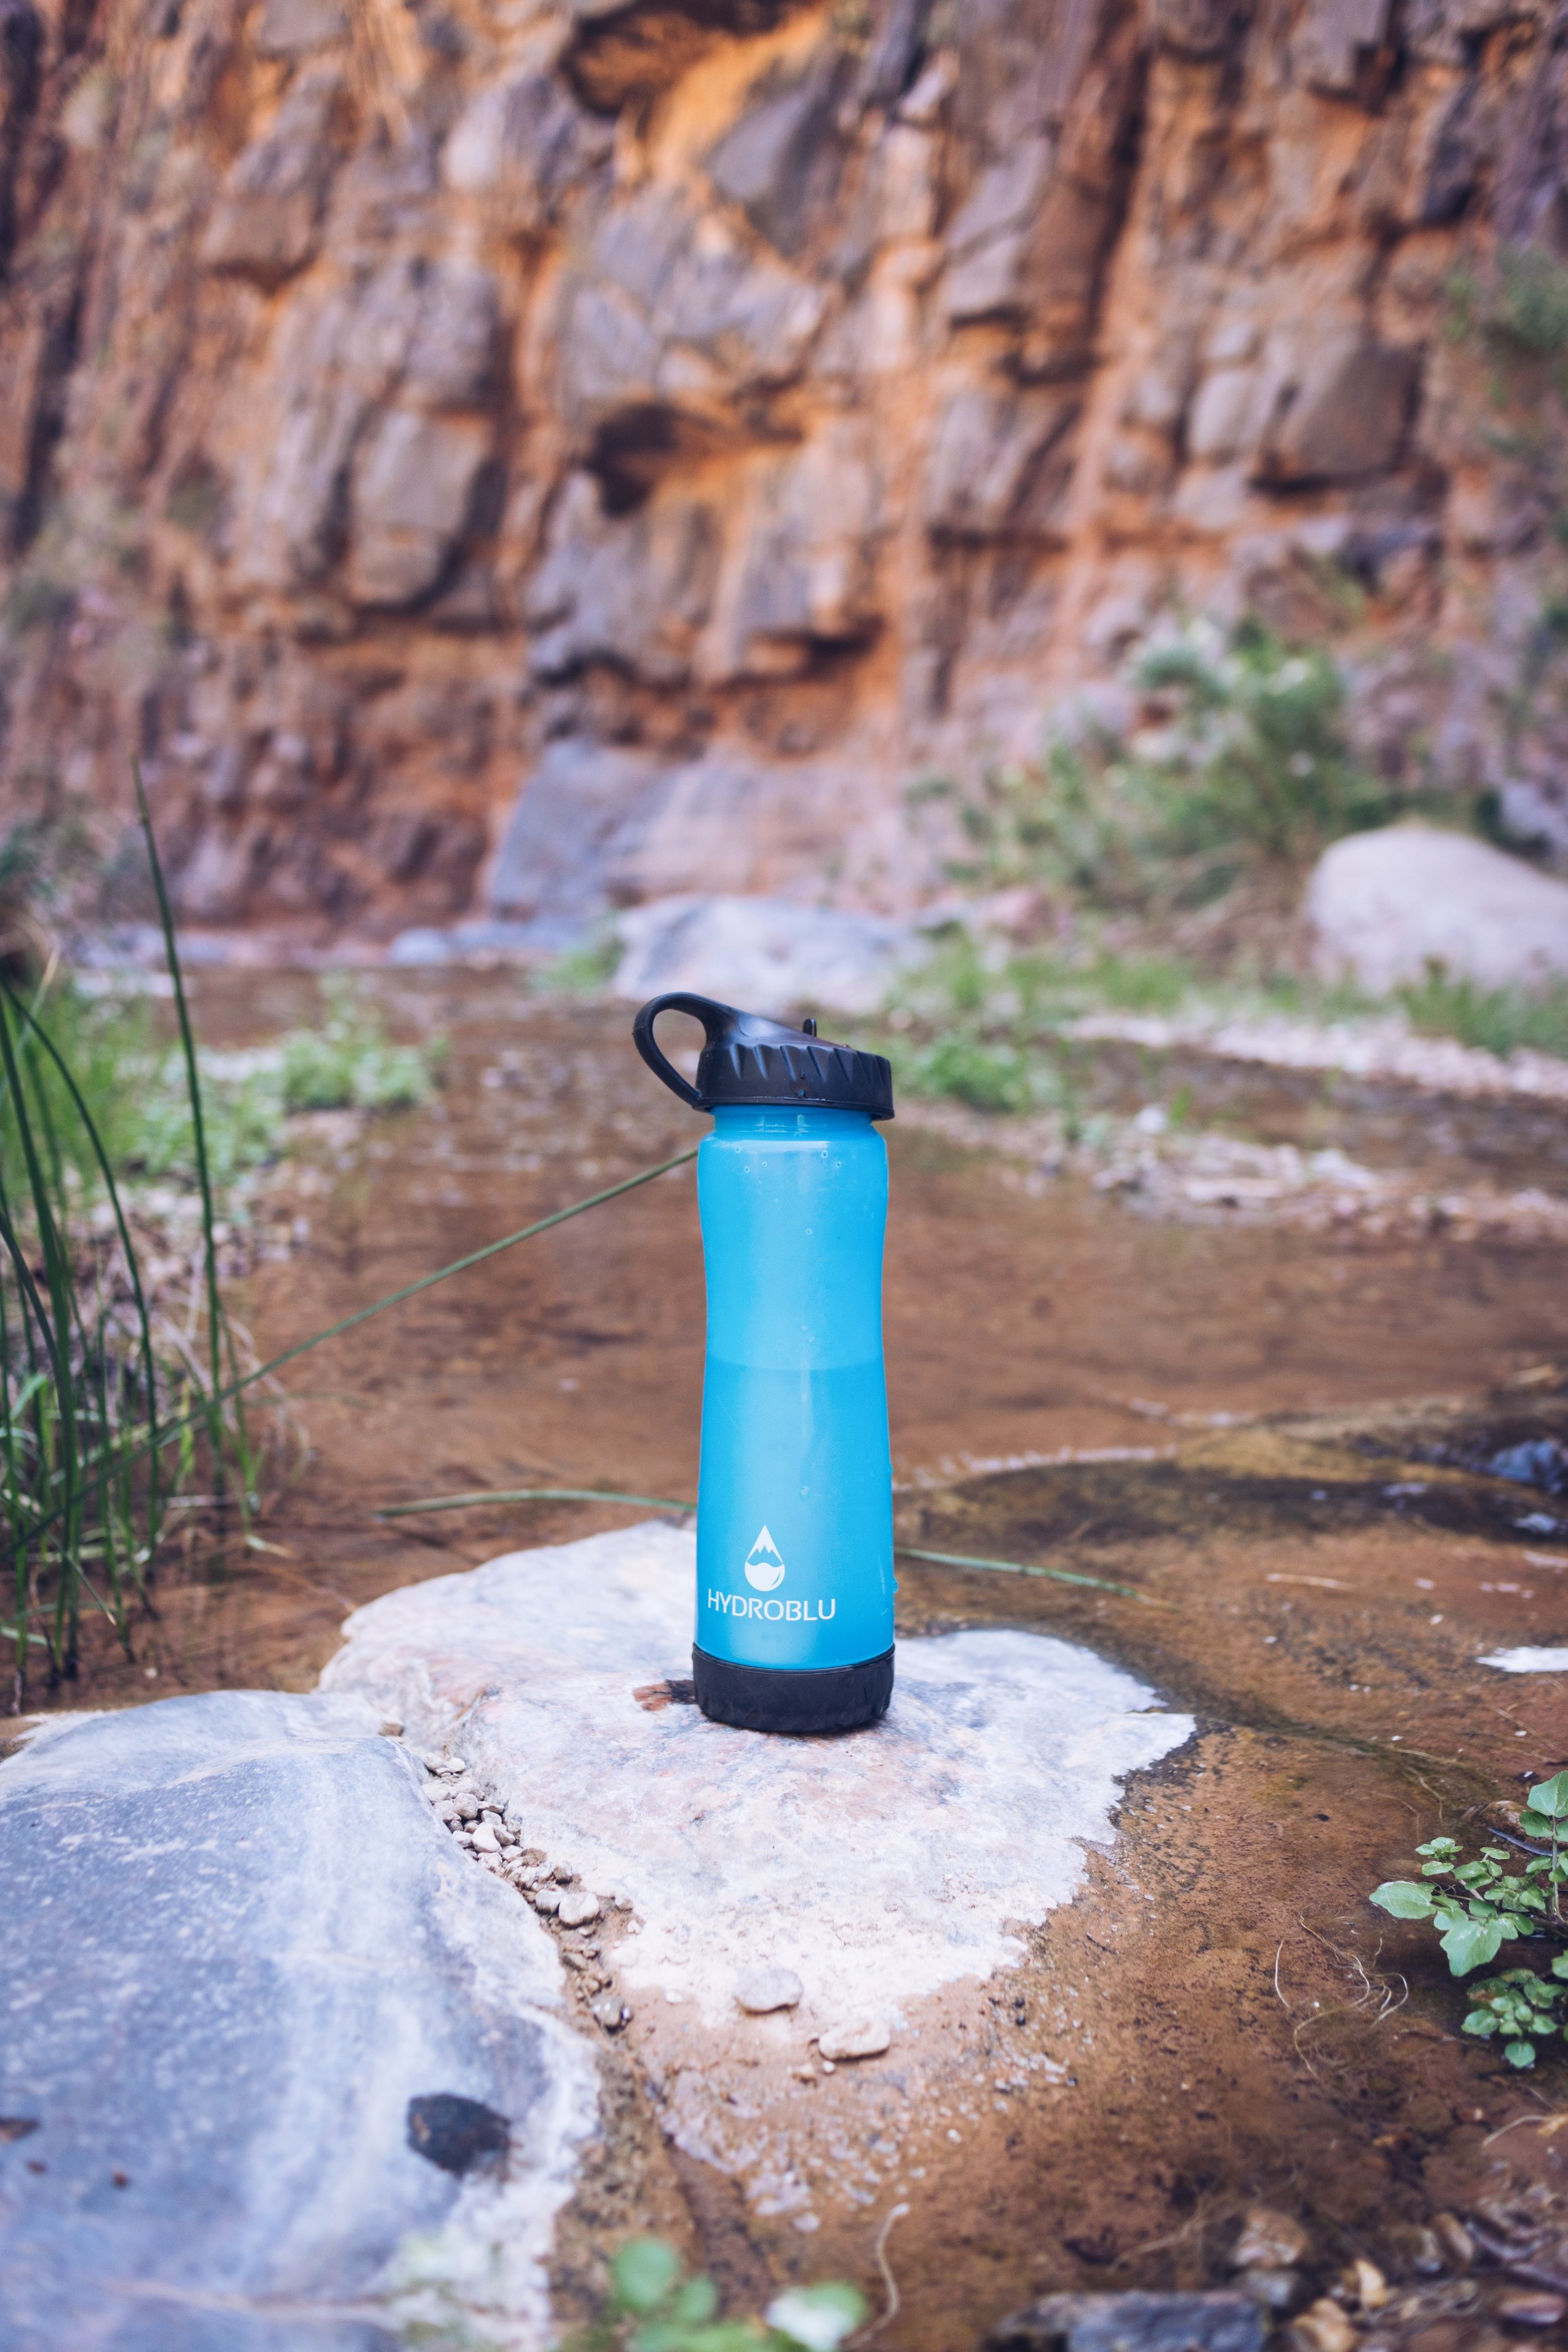 HydroBlu bottle - a great tool to have on a hike like this